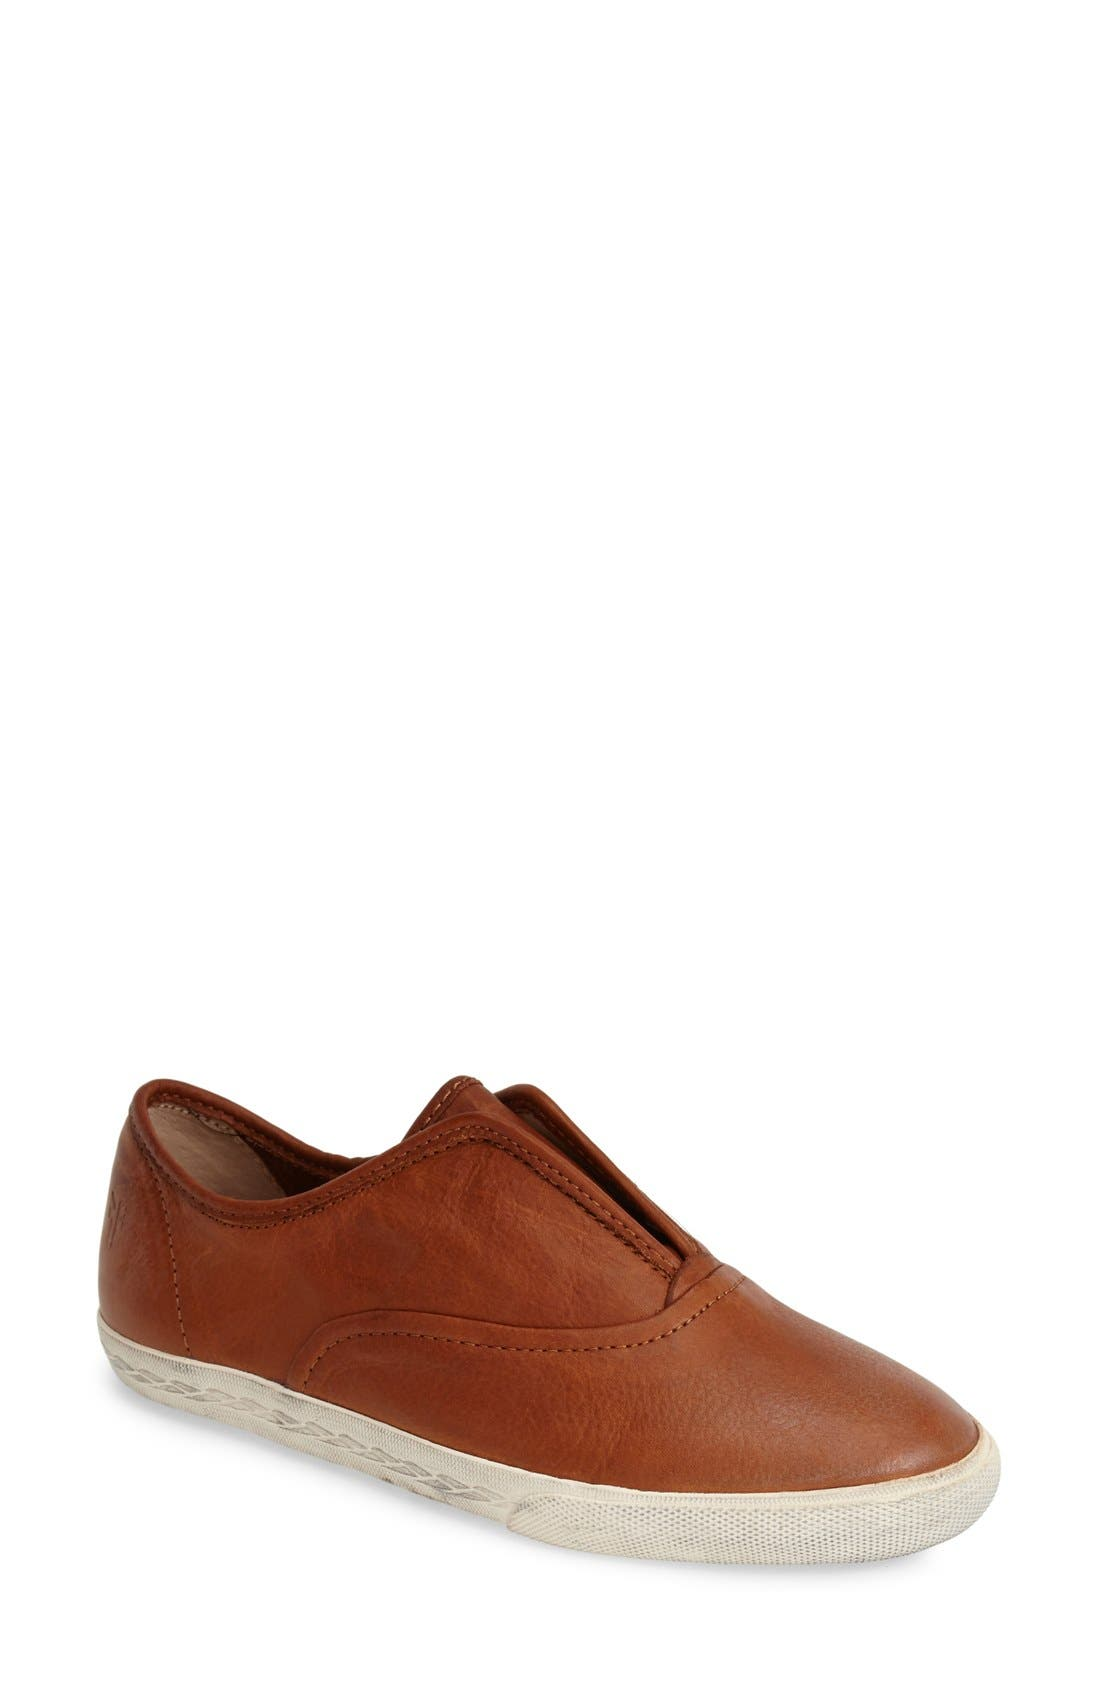 'Mindy' Slip-On Leather Sneaker,                             Main thumbnail 6, color,